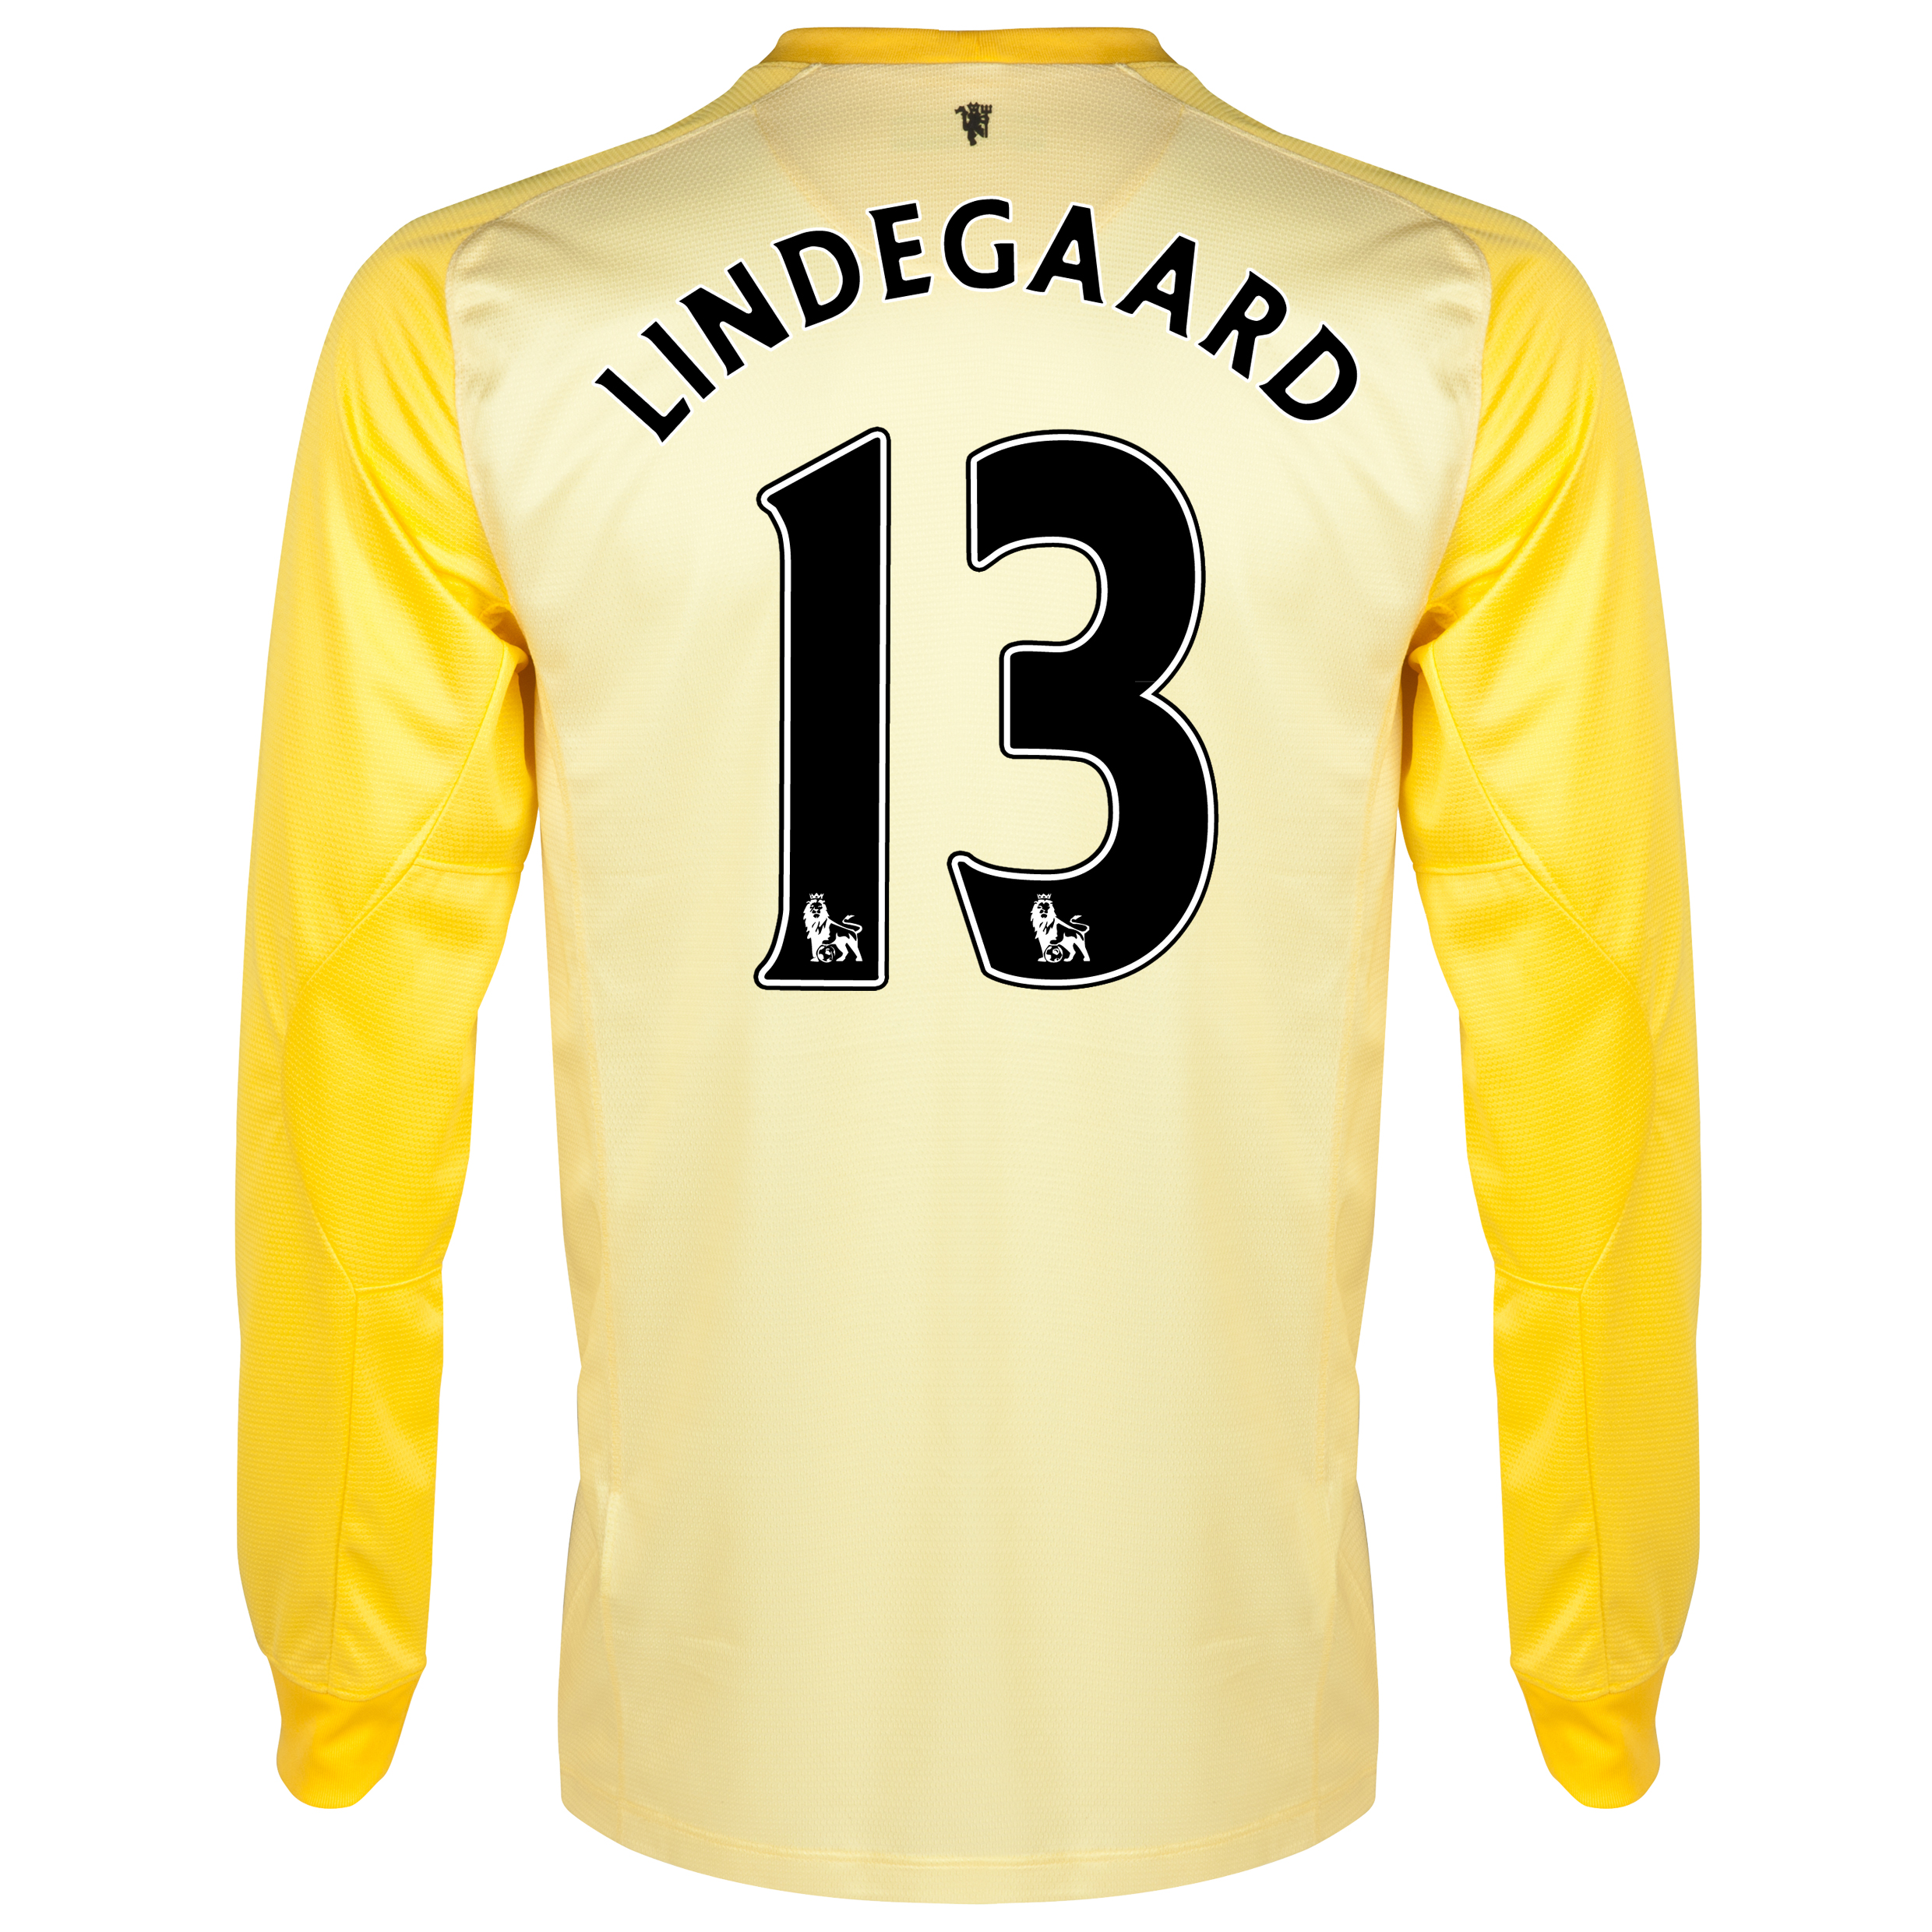 Manchester United Change Goalkeeper Shirt 2013/14 - Kids with Lindegaard 13 printing